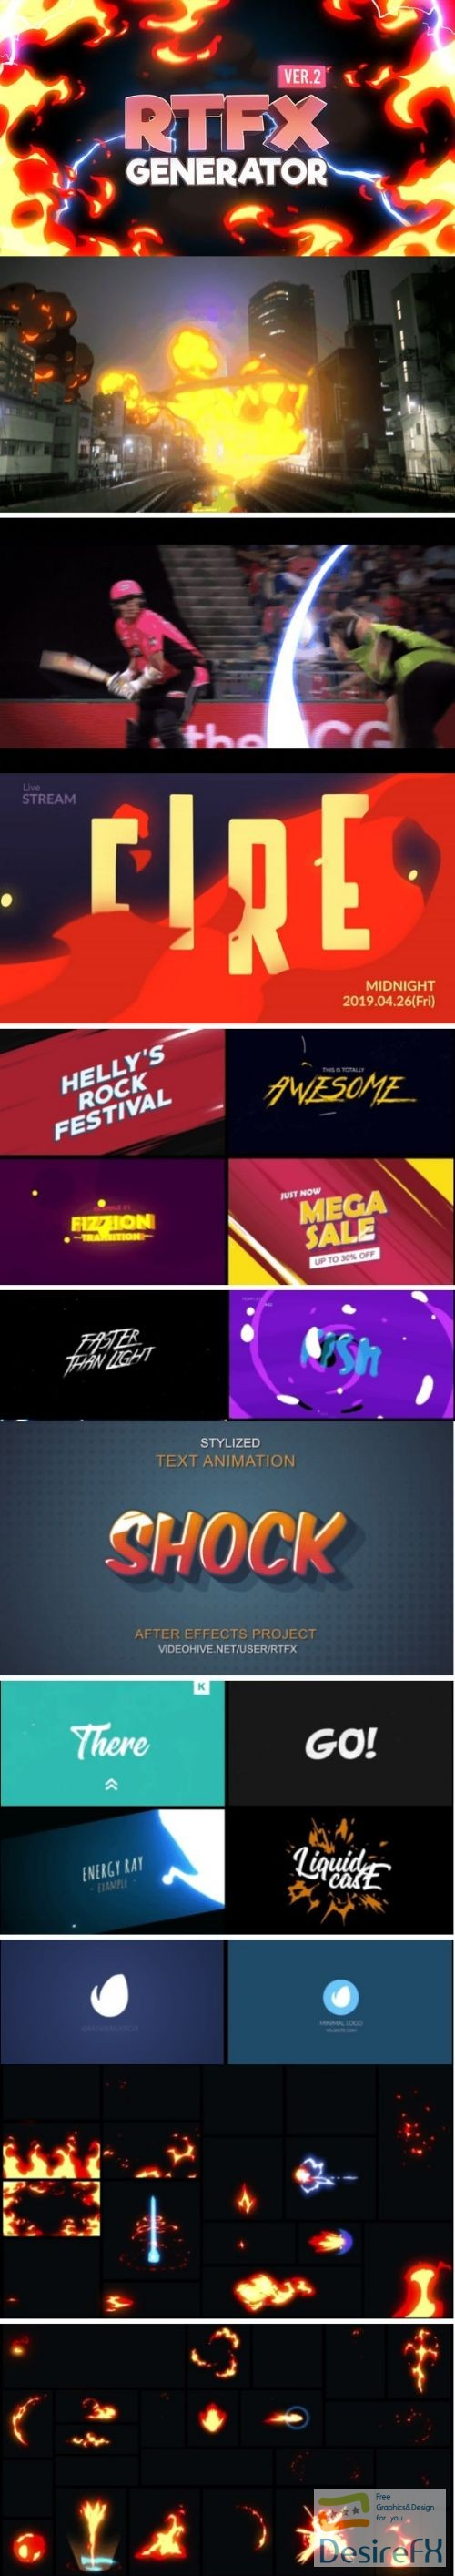 after-effects-projects - Videohive RTFX Generator [1000 FX elements] 19563523 V.2